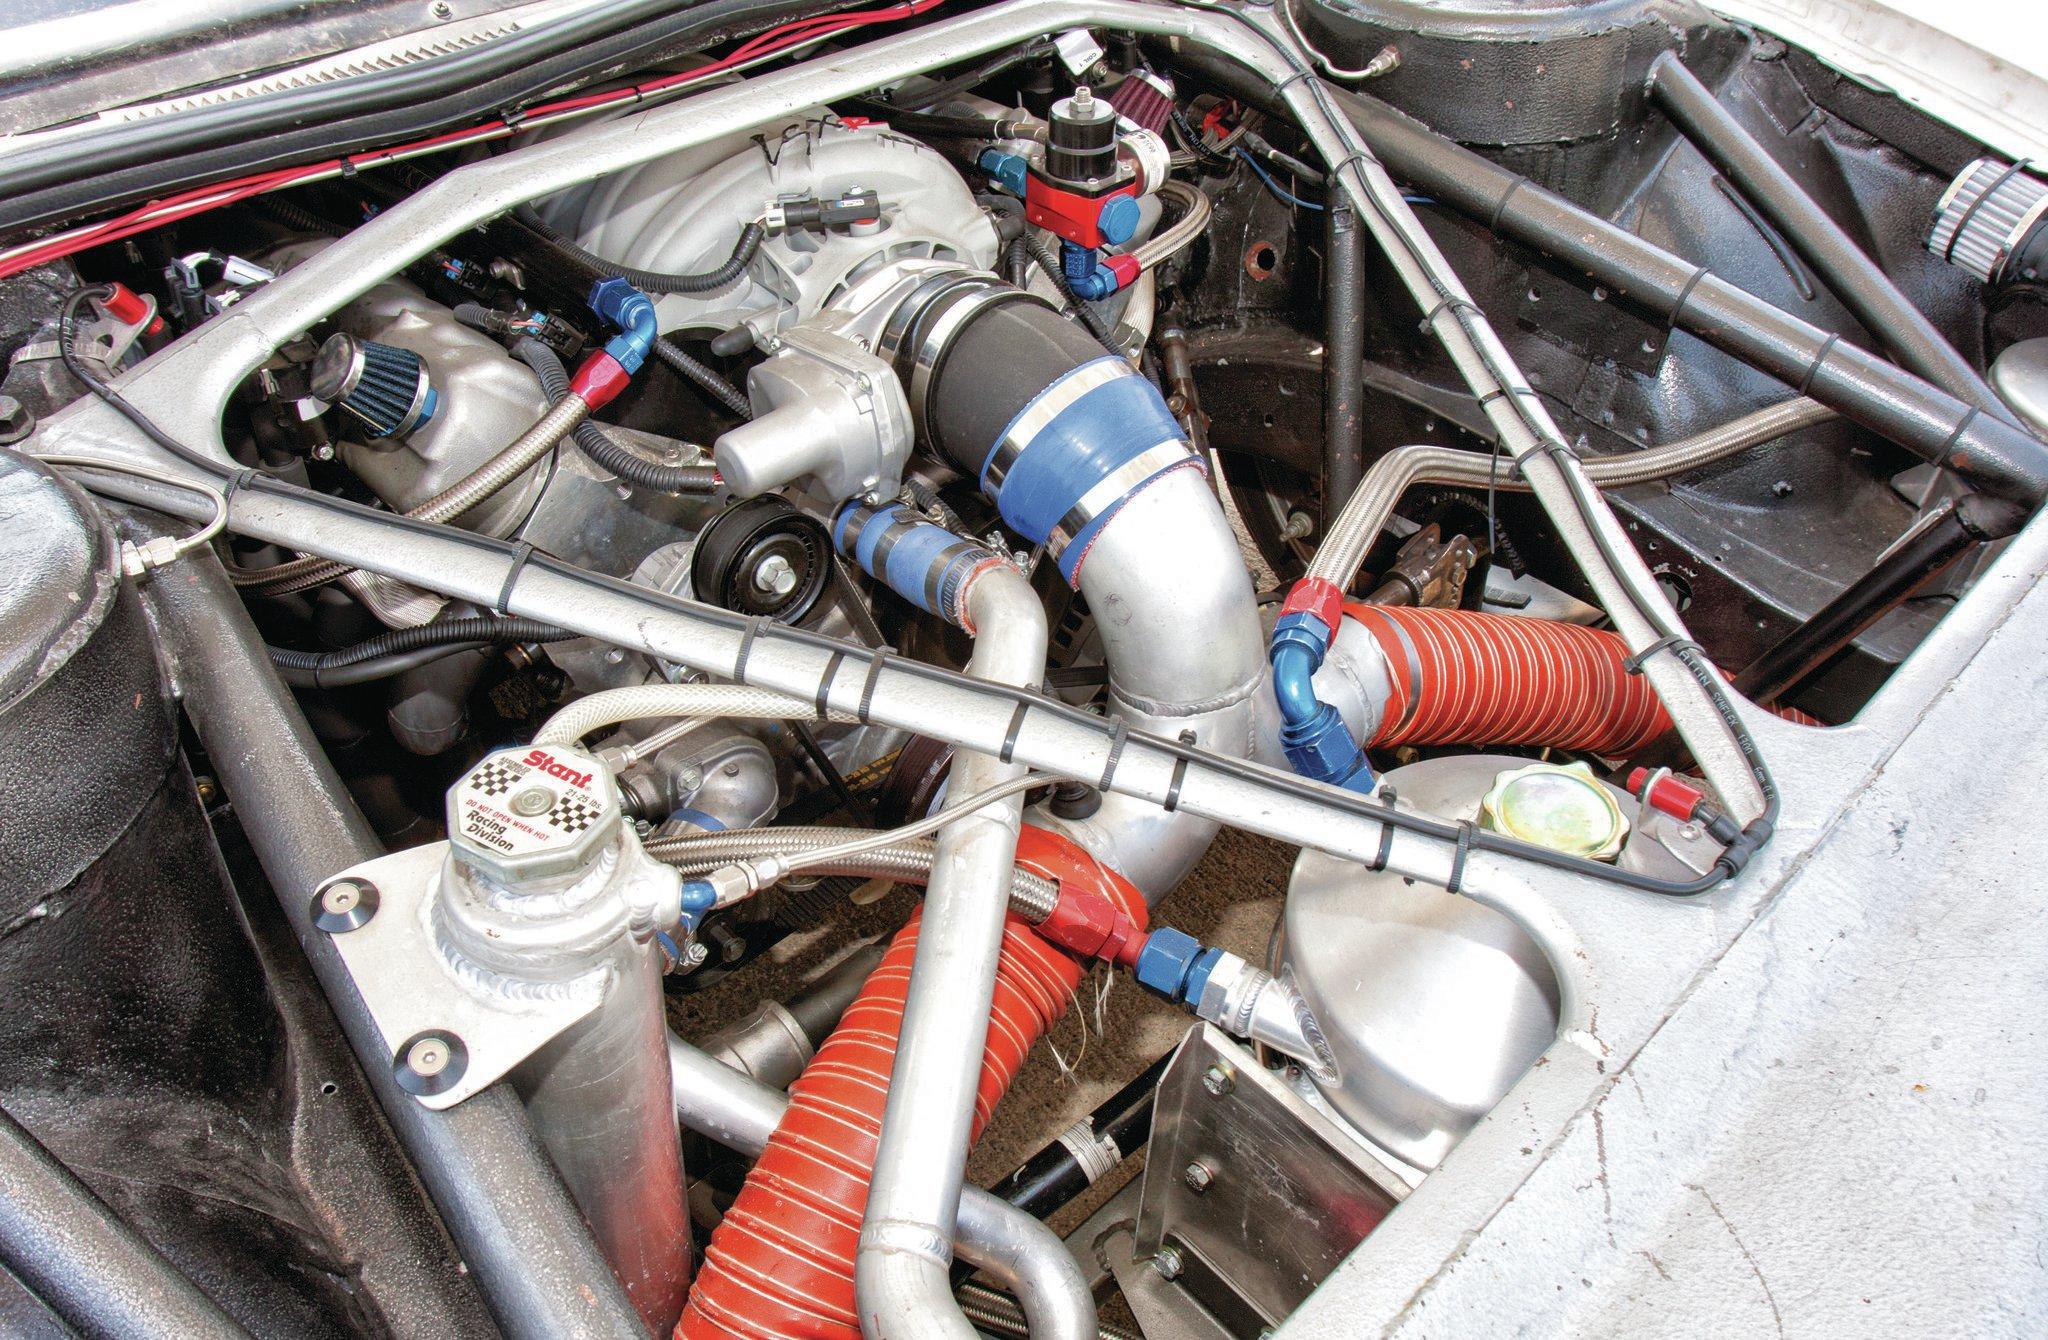 A Mast Motorsports 7.0L LS7 makes about 800 hp and is set back 25 percent to comply with SCTA's Gas Altered class and has about a 53/47 weight distribution. Behind the engine is a Tremec TR6060 trans and Corvette independent rear suspension.